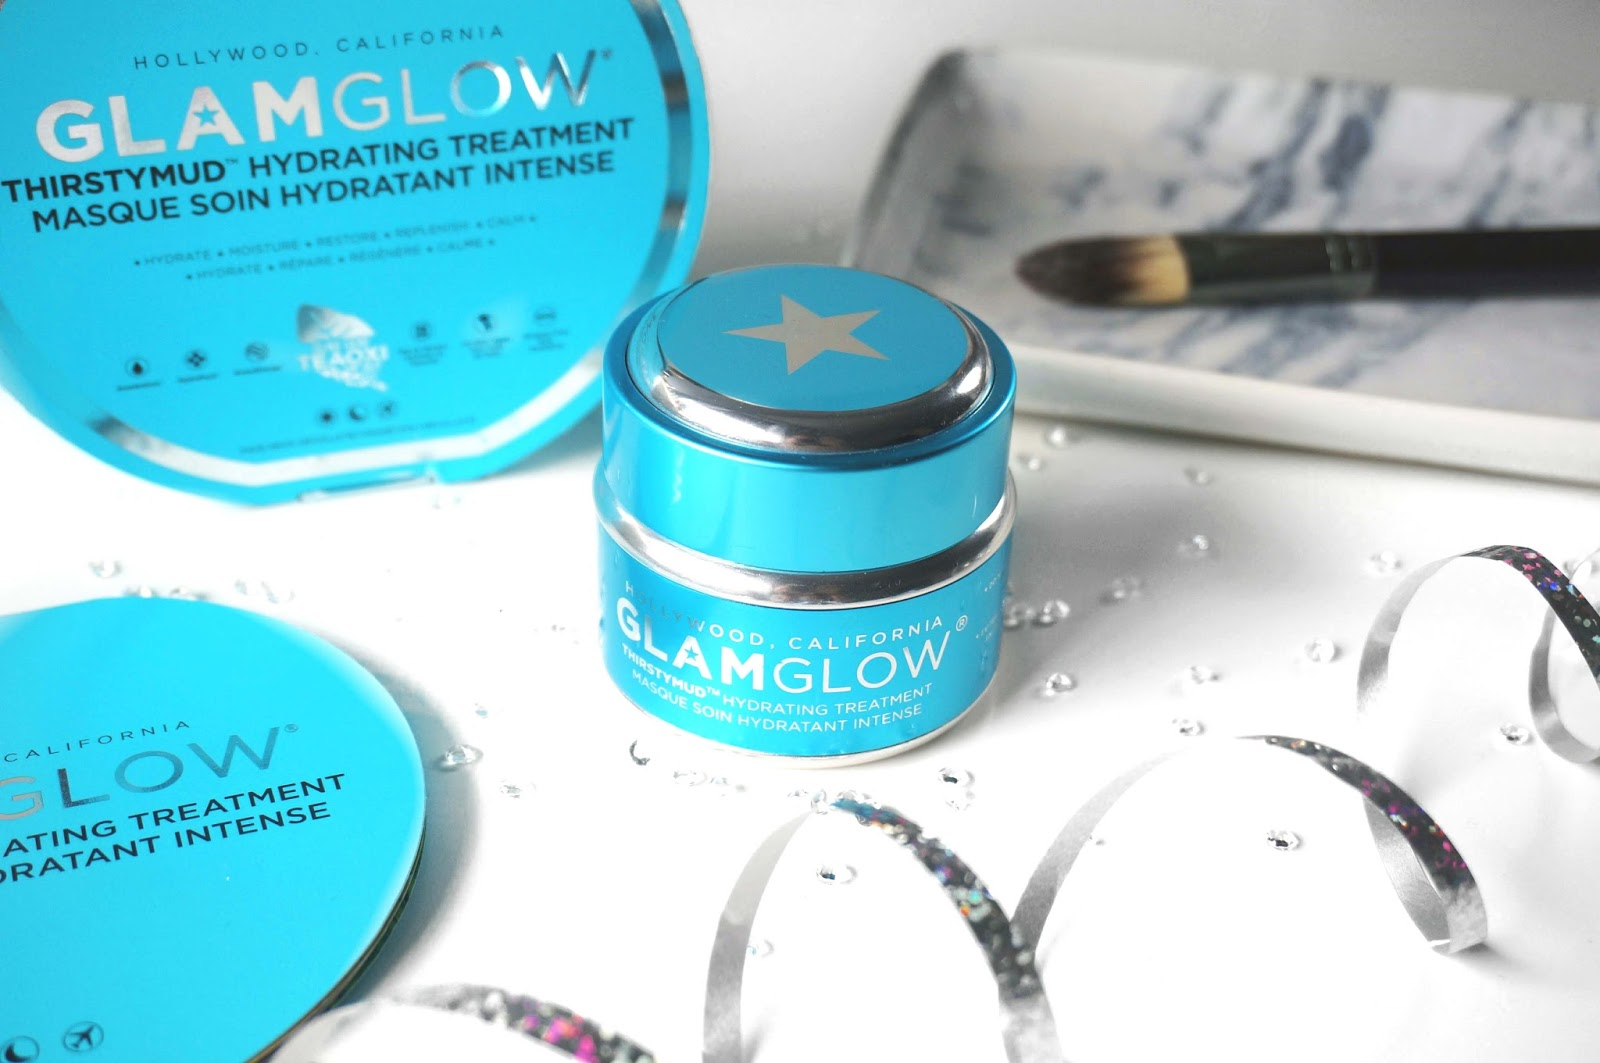 Joyce lau glamglow thirstymud hydrating treatment review hope your monday is going great so far ive had a relaxing weekend treating myself to a hot bath and a face mask which i thought i will share today solutioingenieria Choice Image